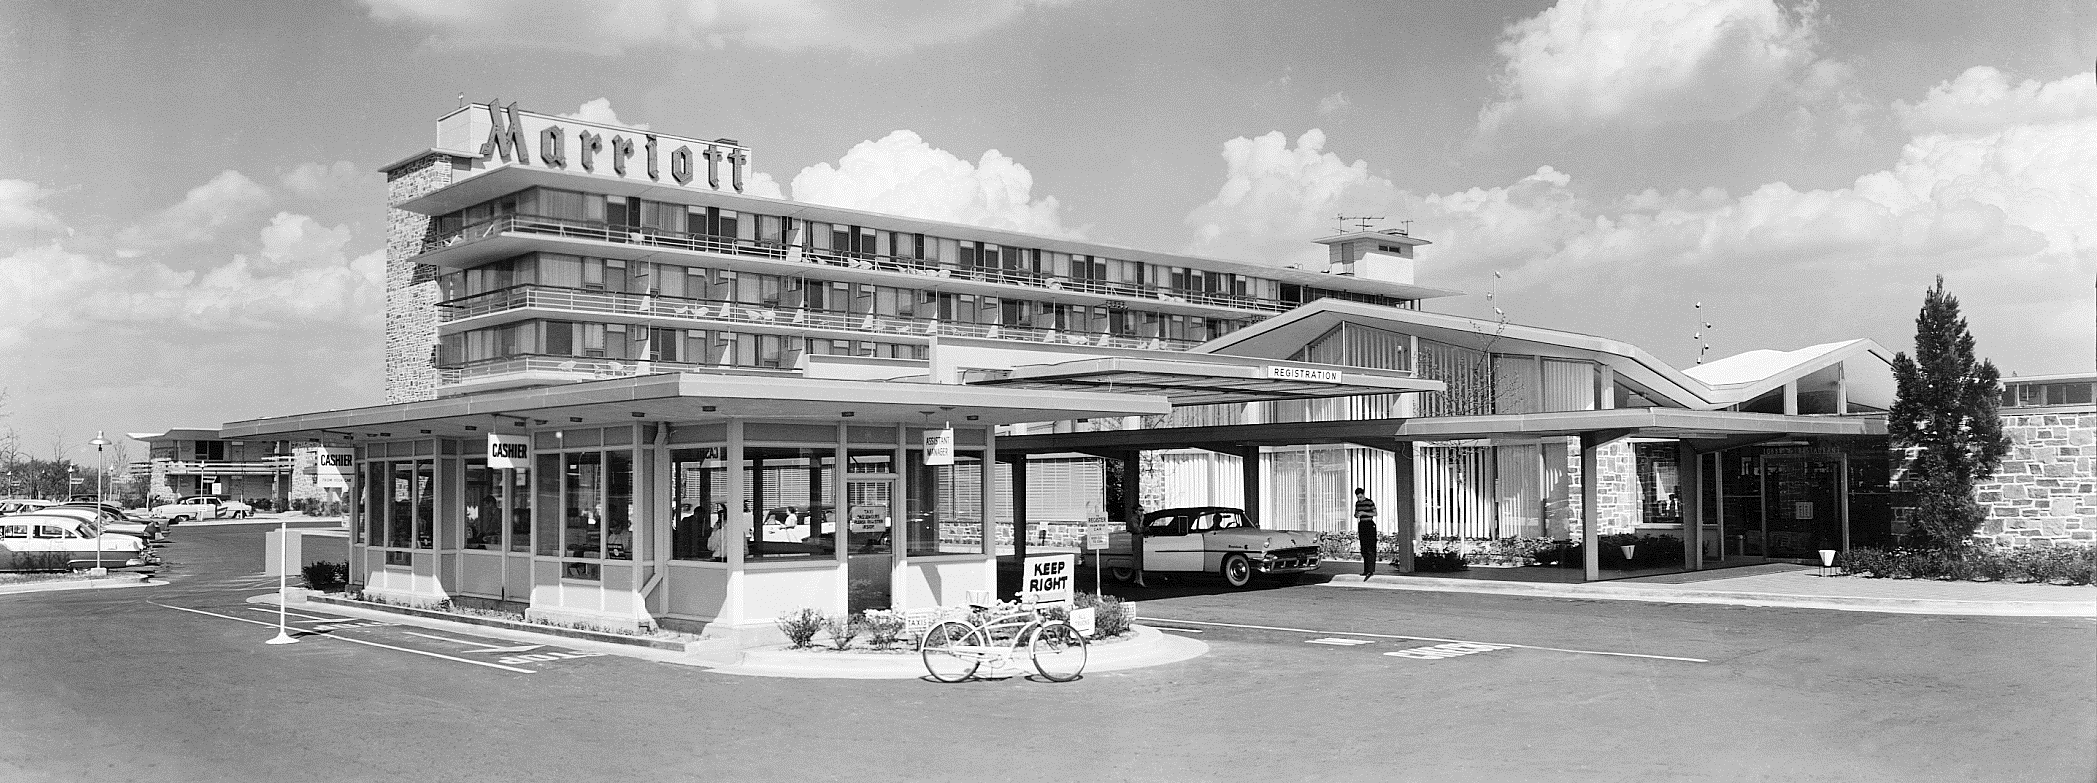 Exterior of the Twin Bridges Motor Hotel.